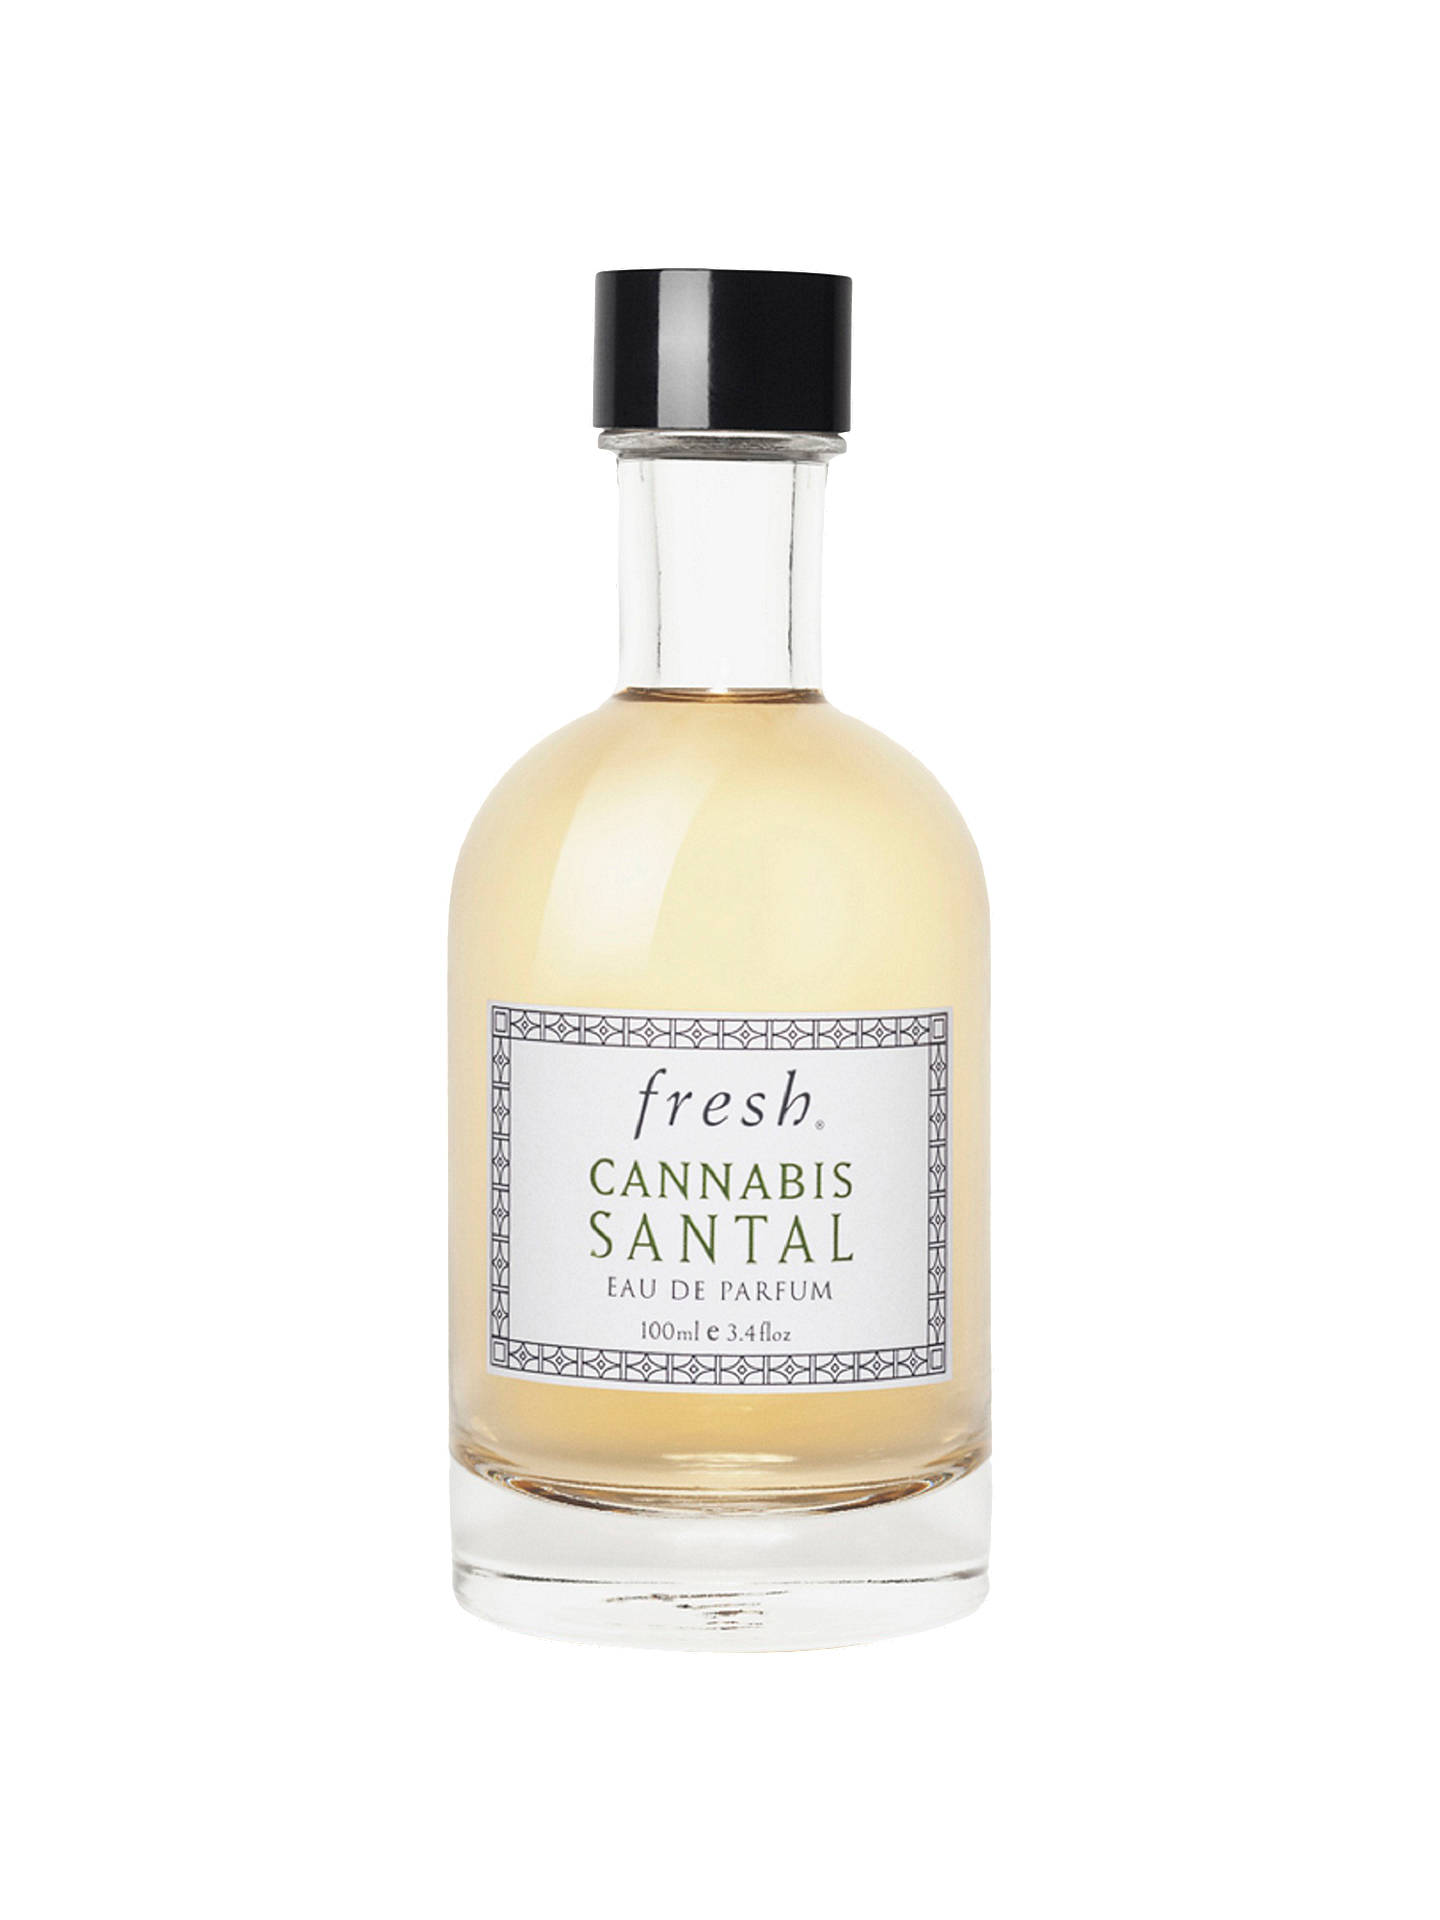 BuyFresh Cannabis Santal Eau de Parfum, 30ml Online at johnlewis.com